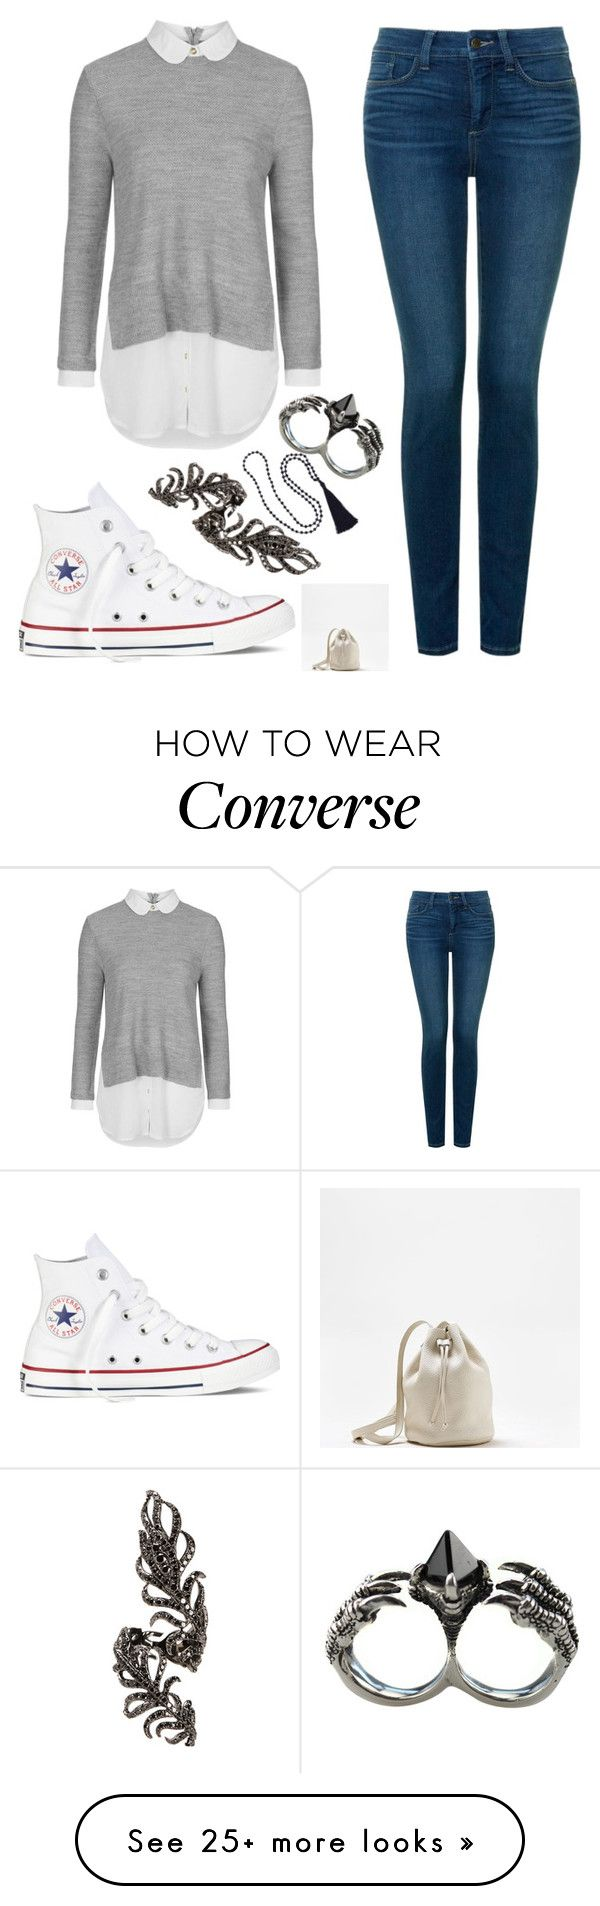 """Untitled #498"" by tokyoghoul1 on Polyvore featuring NYDJ, Topshop, Converse, Elise Dray, KD2024, American Eagle Outfitters, women's clothing, women's fashion, women and female"